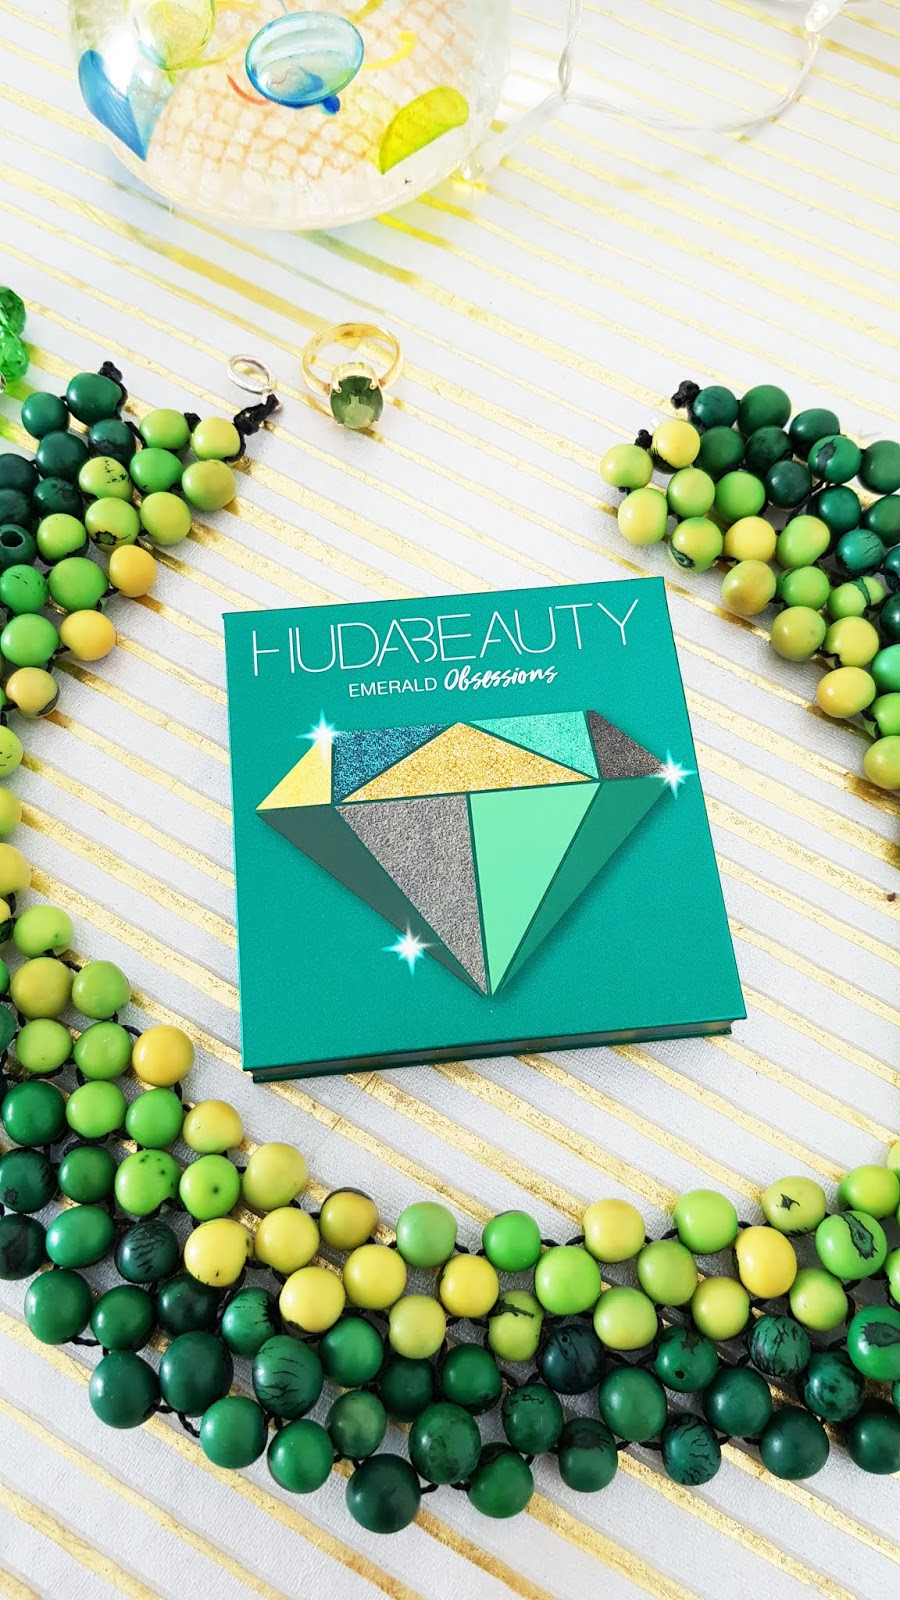 The Huda Beauty Emerald Obsessions palette close up